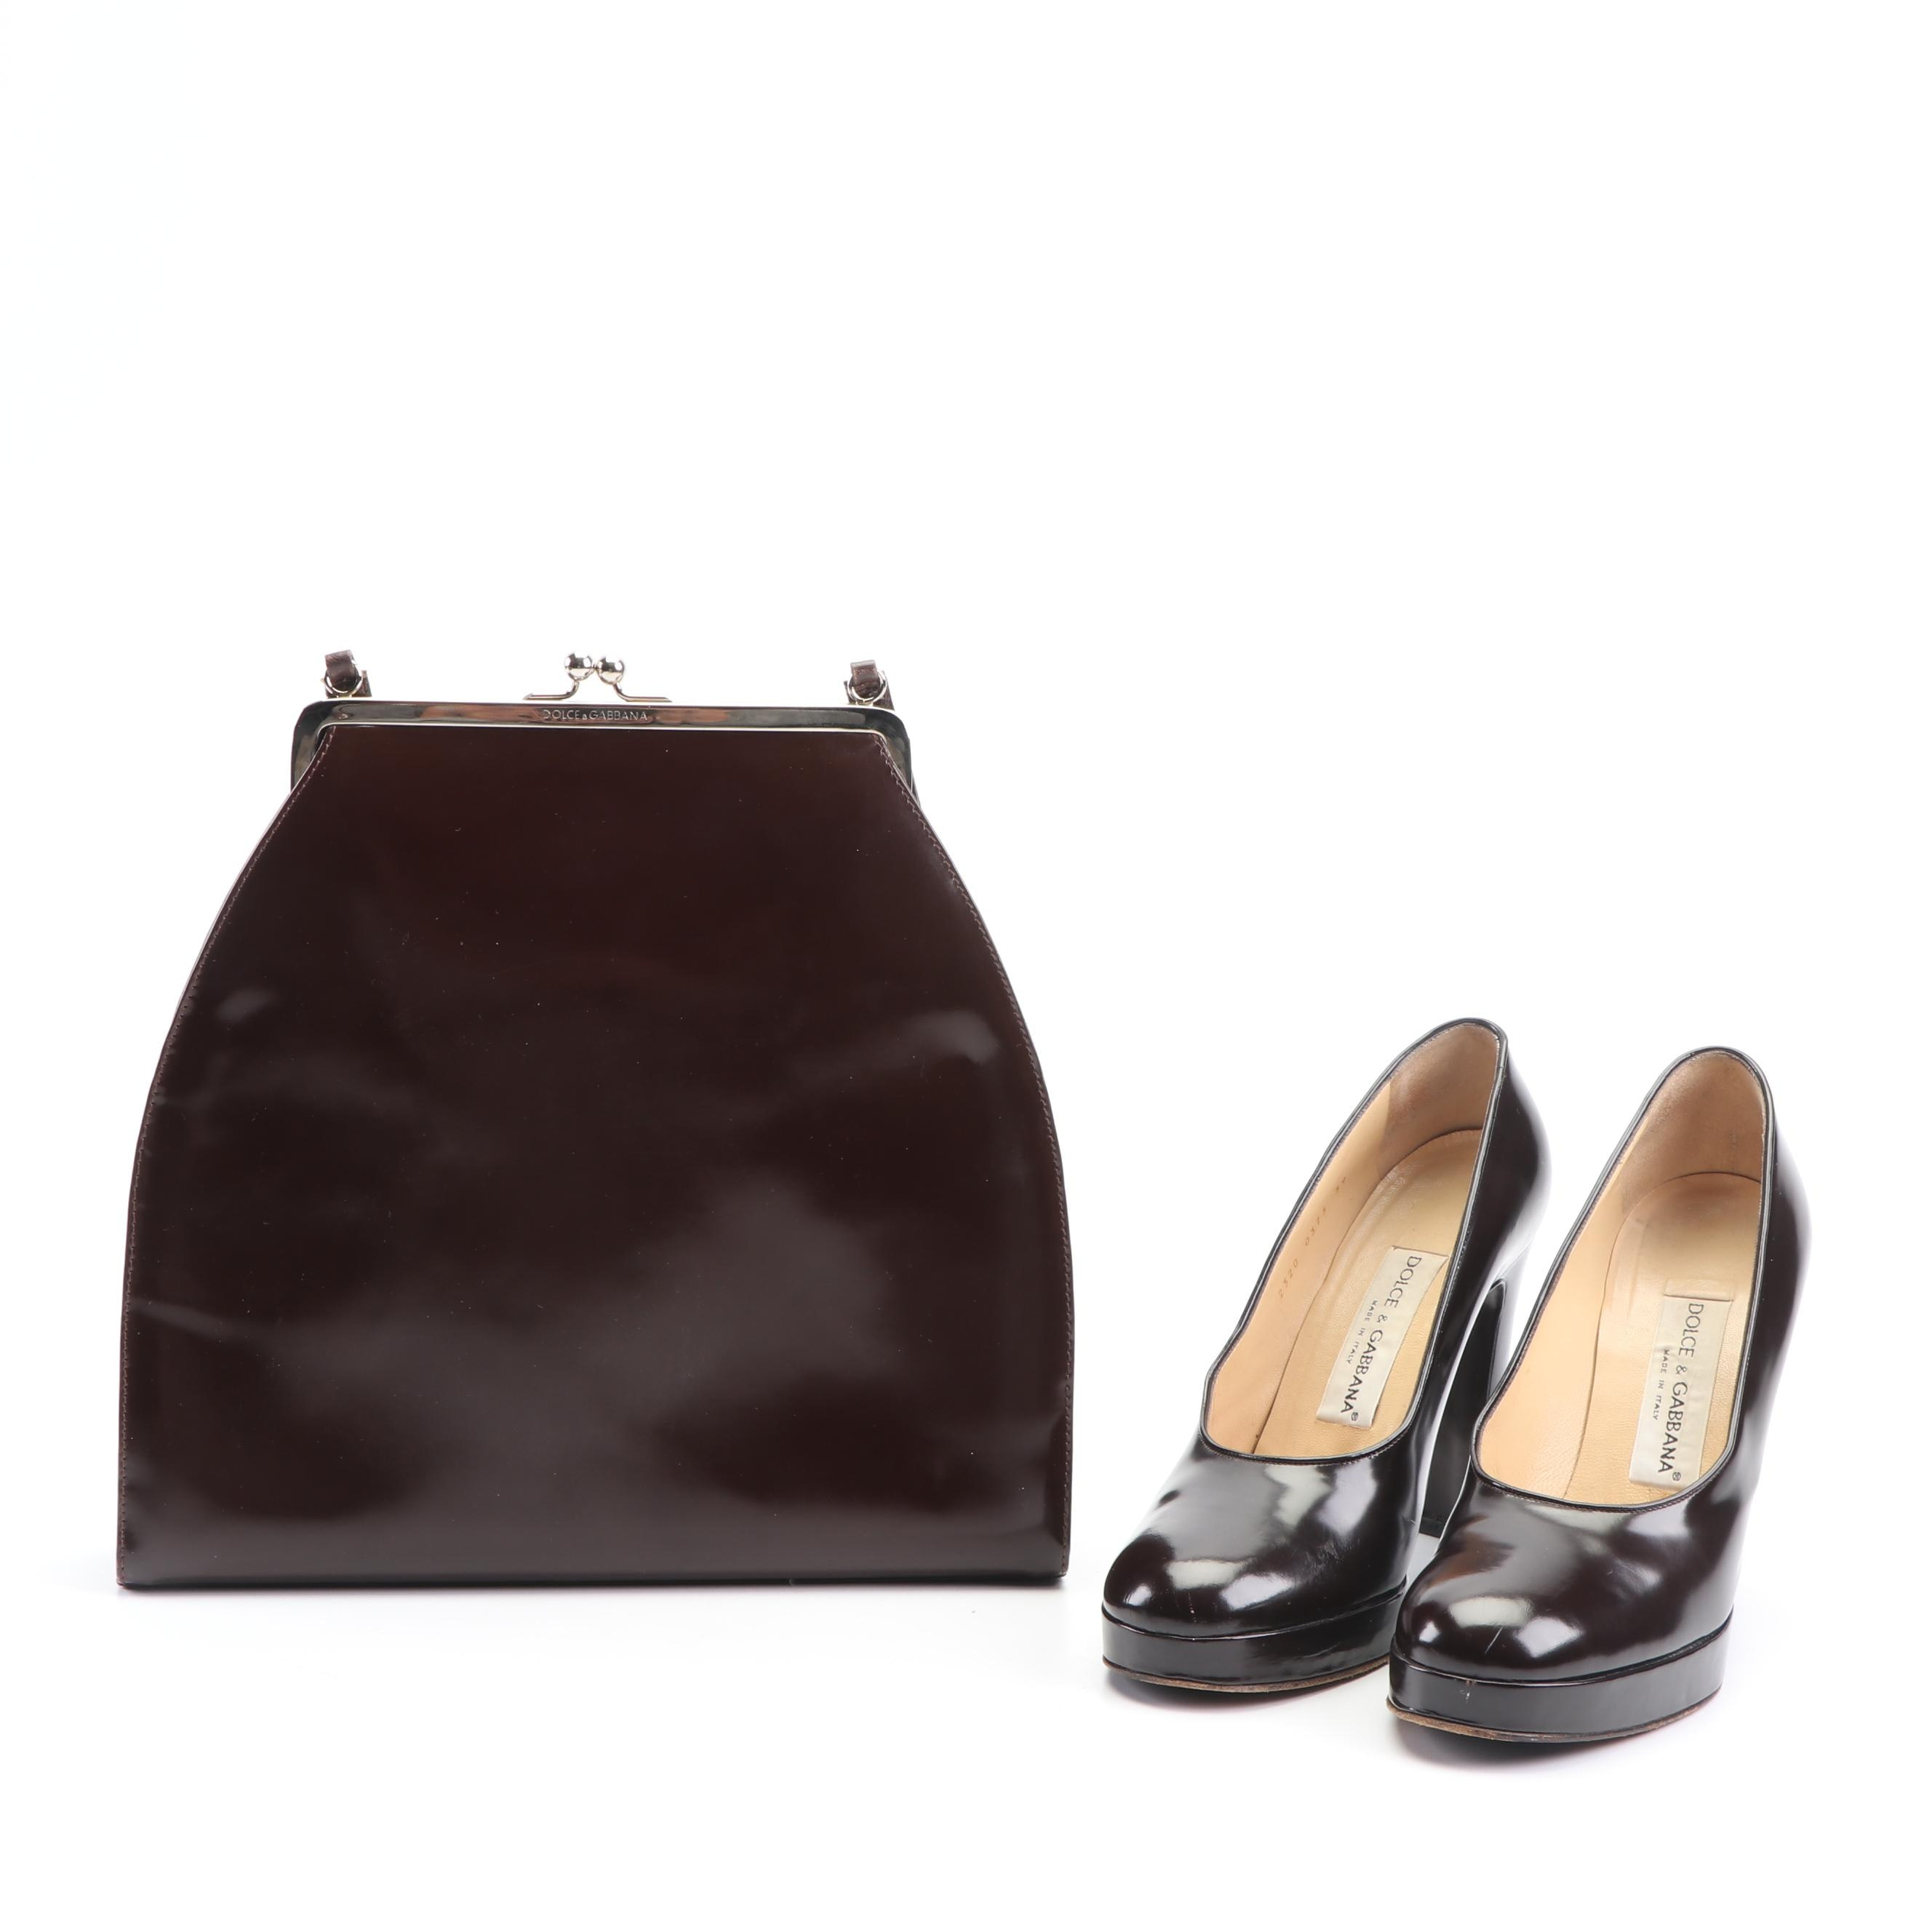 Dolce & Gabbana Brown Patent Leather Frame Bag and High-Heeled Pumps